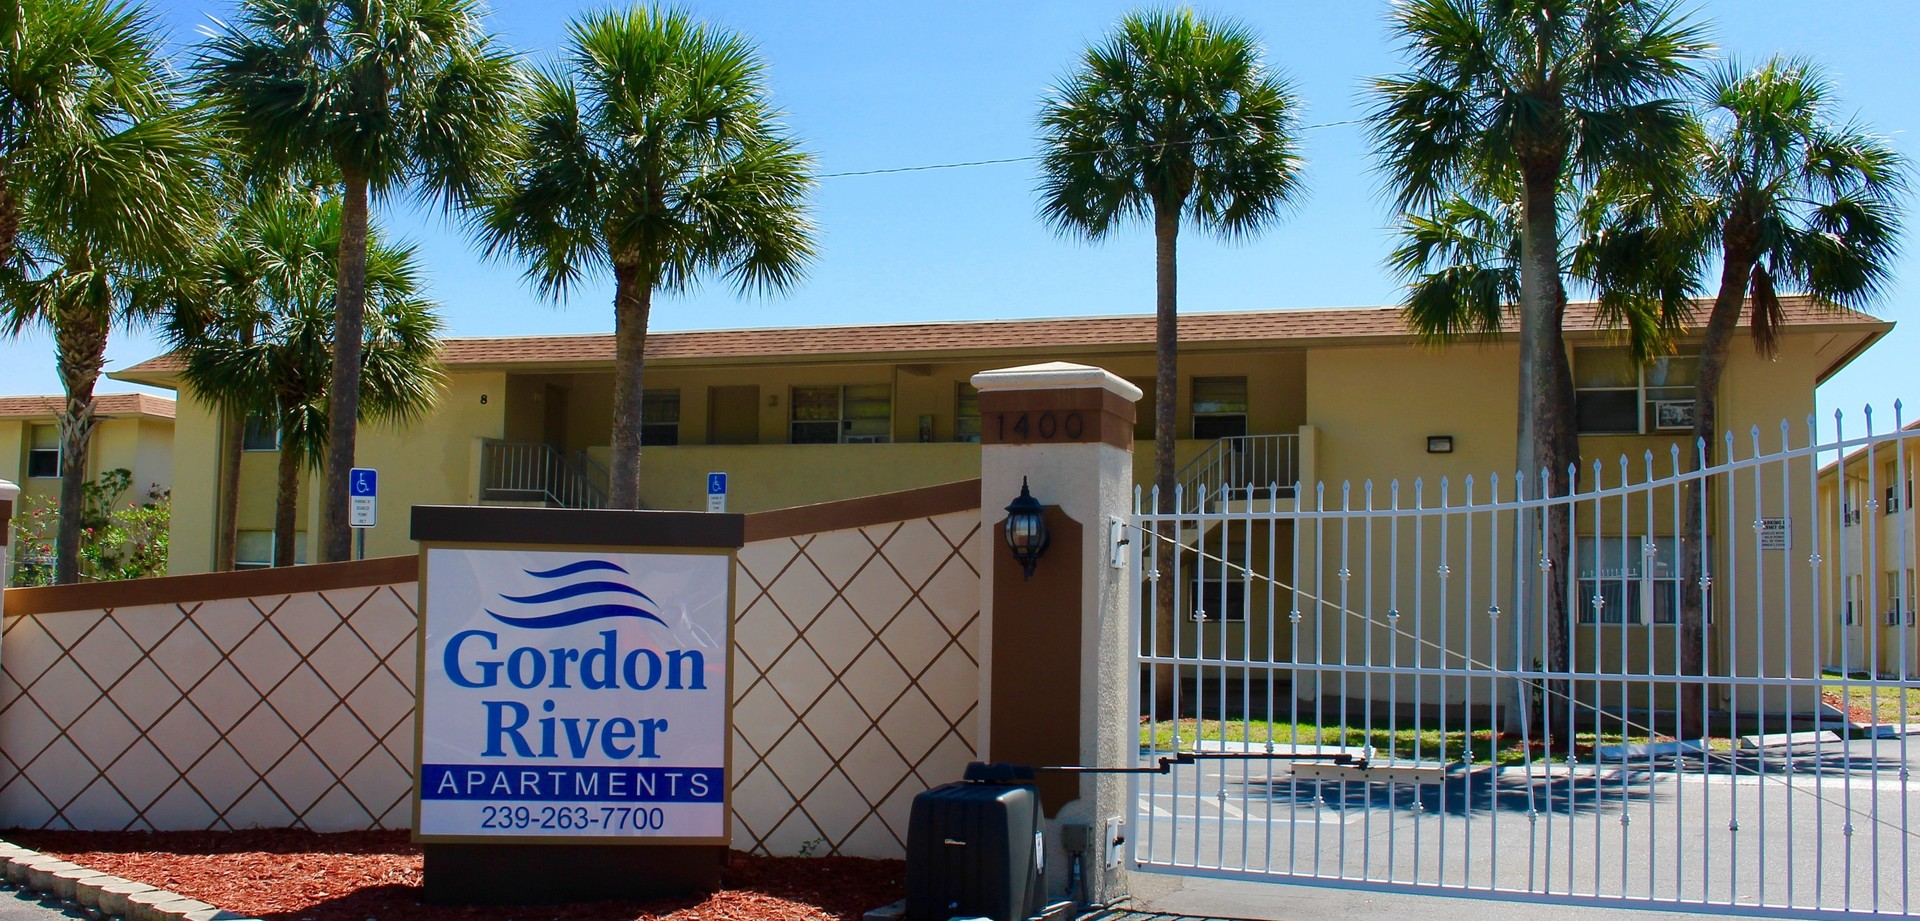 Gordon river apartment homes 3 bedroom 1400 5th ave n - 1 bedroom apartments in naples fl ...